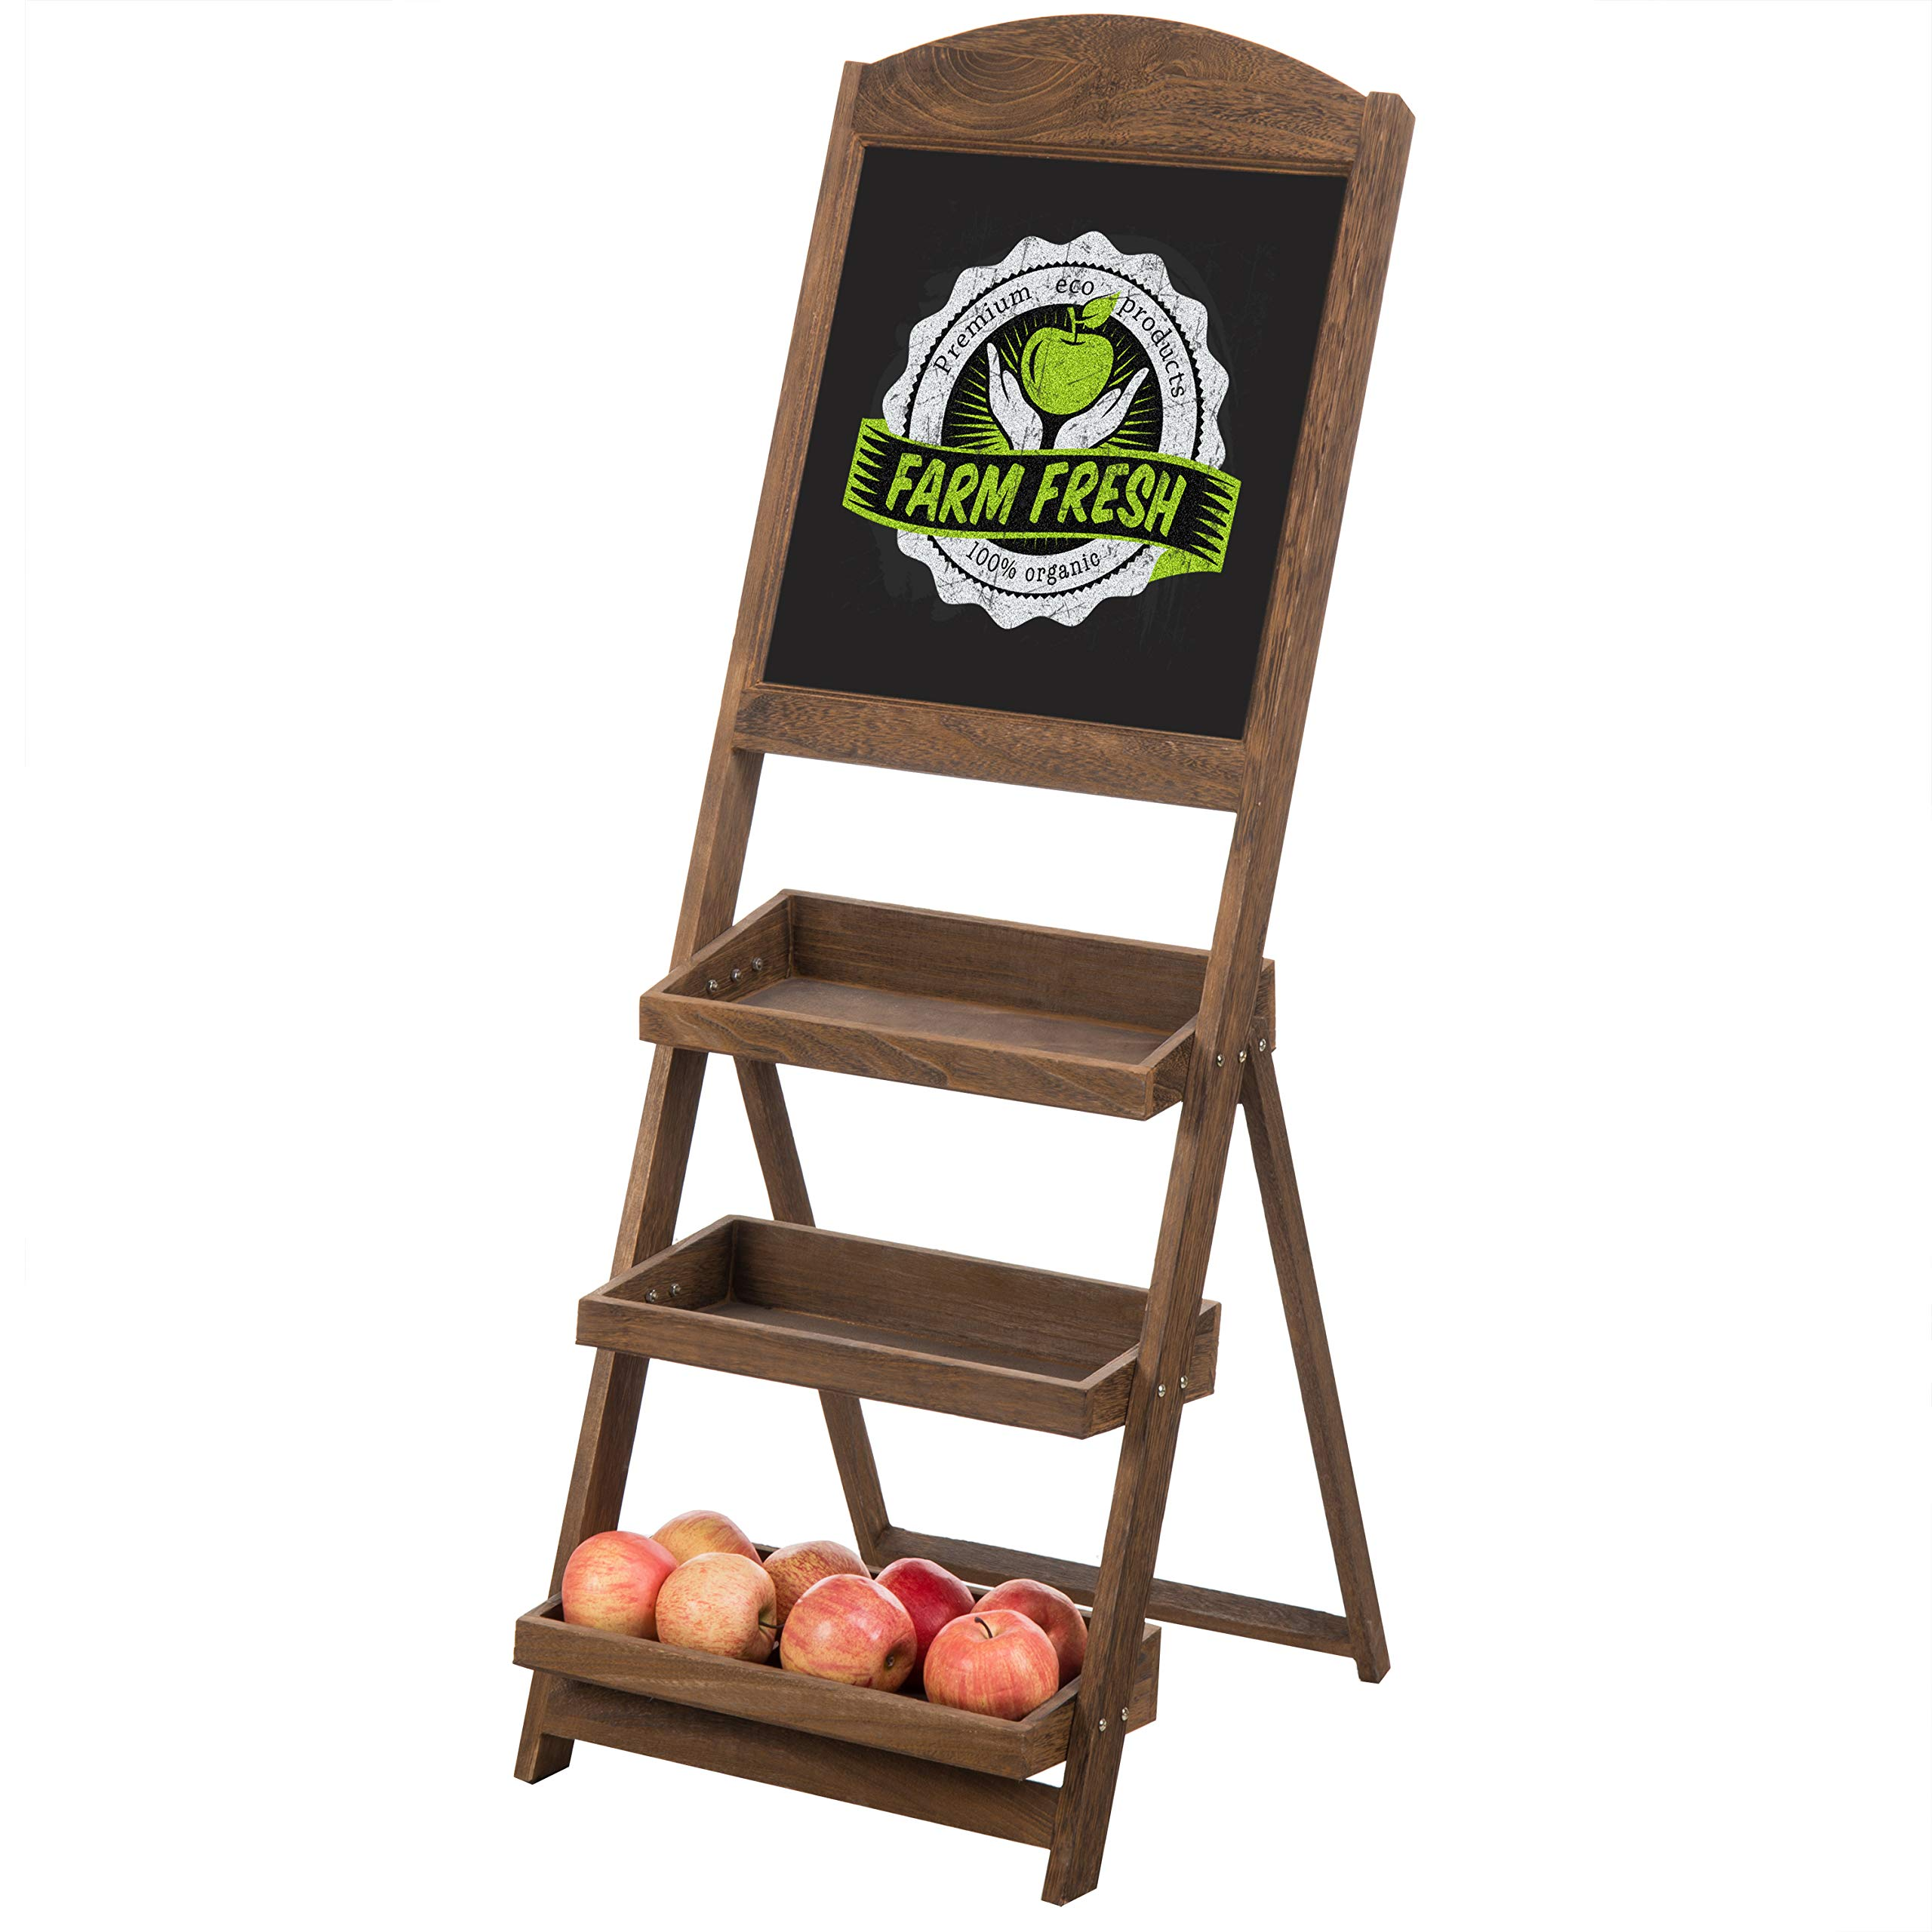 MyGift Rustic Burnt Wood Chalkboard Easel with 3-Tiered Display Shelves by MyGift